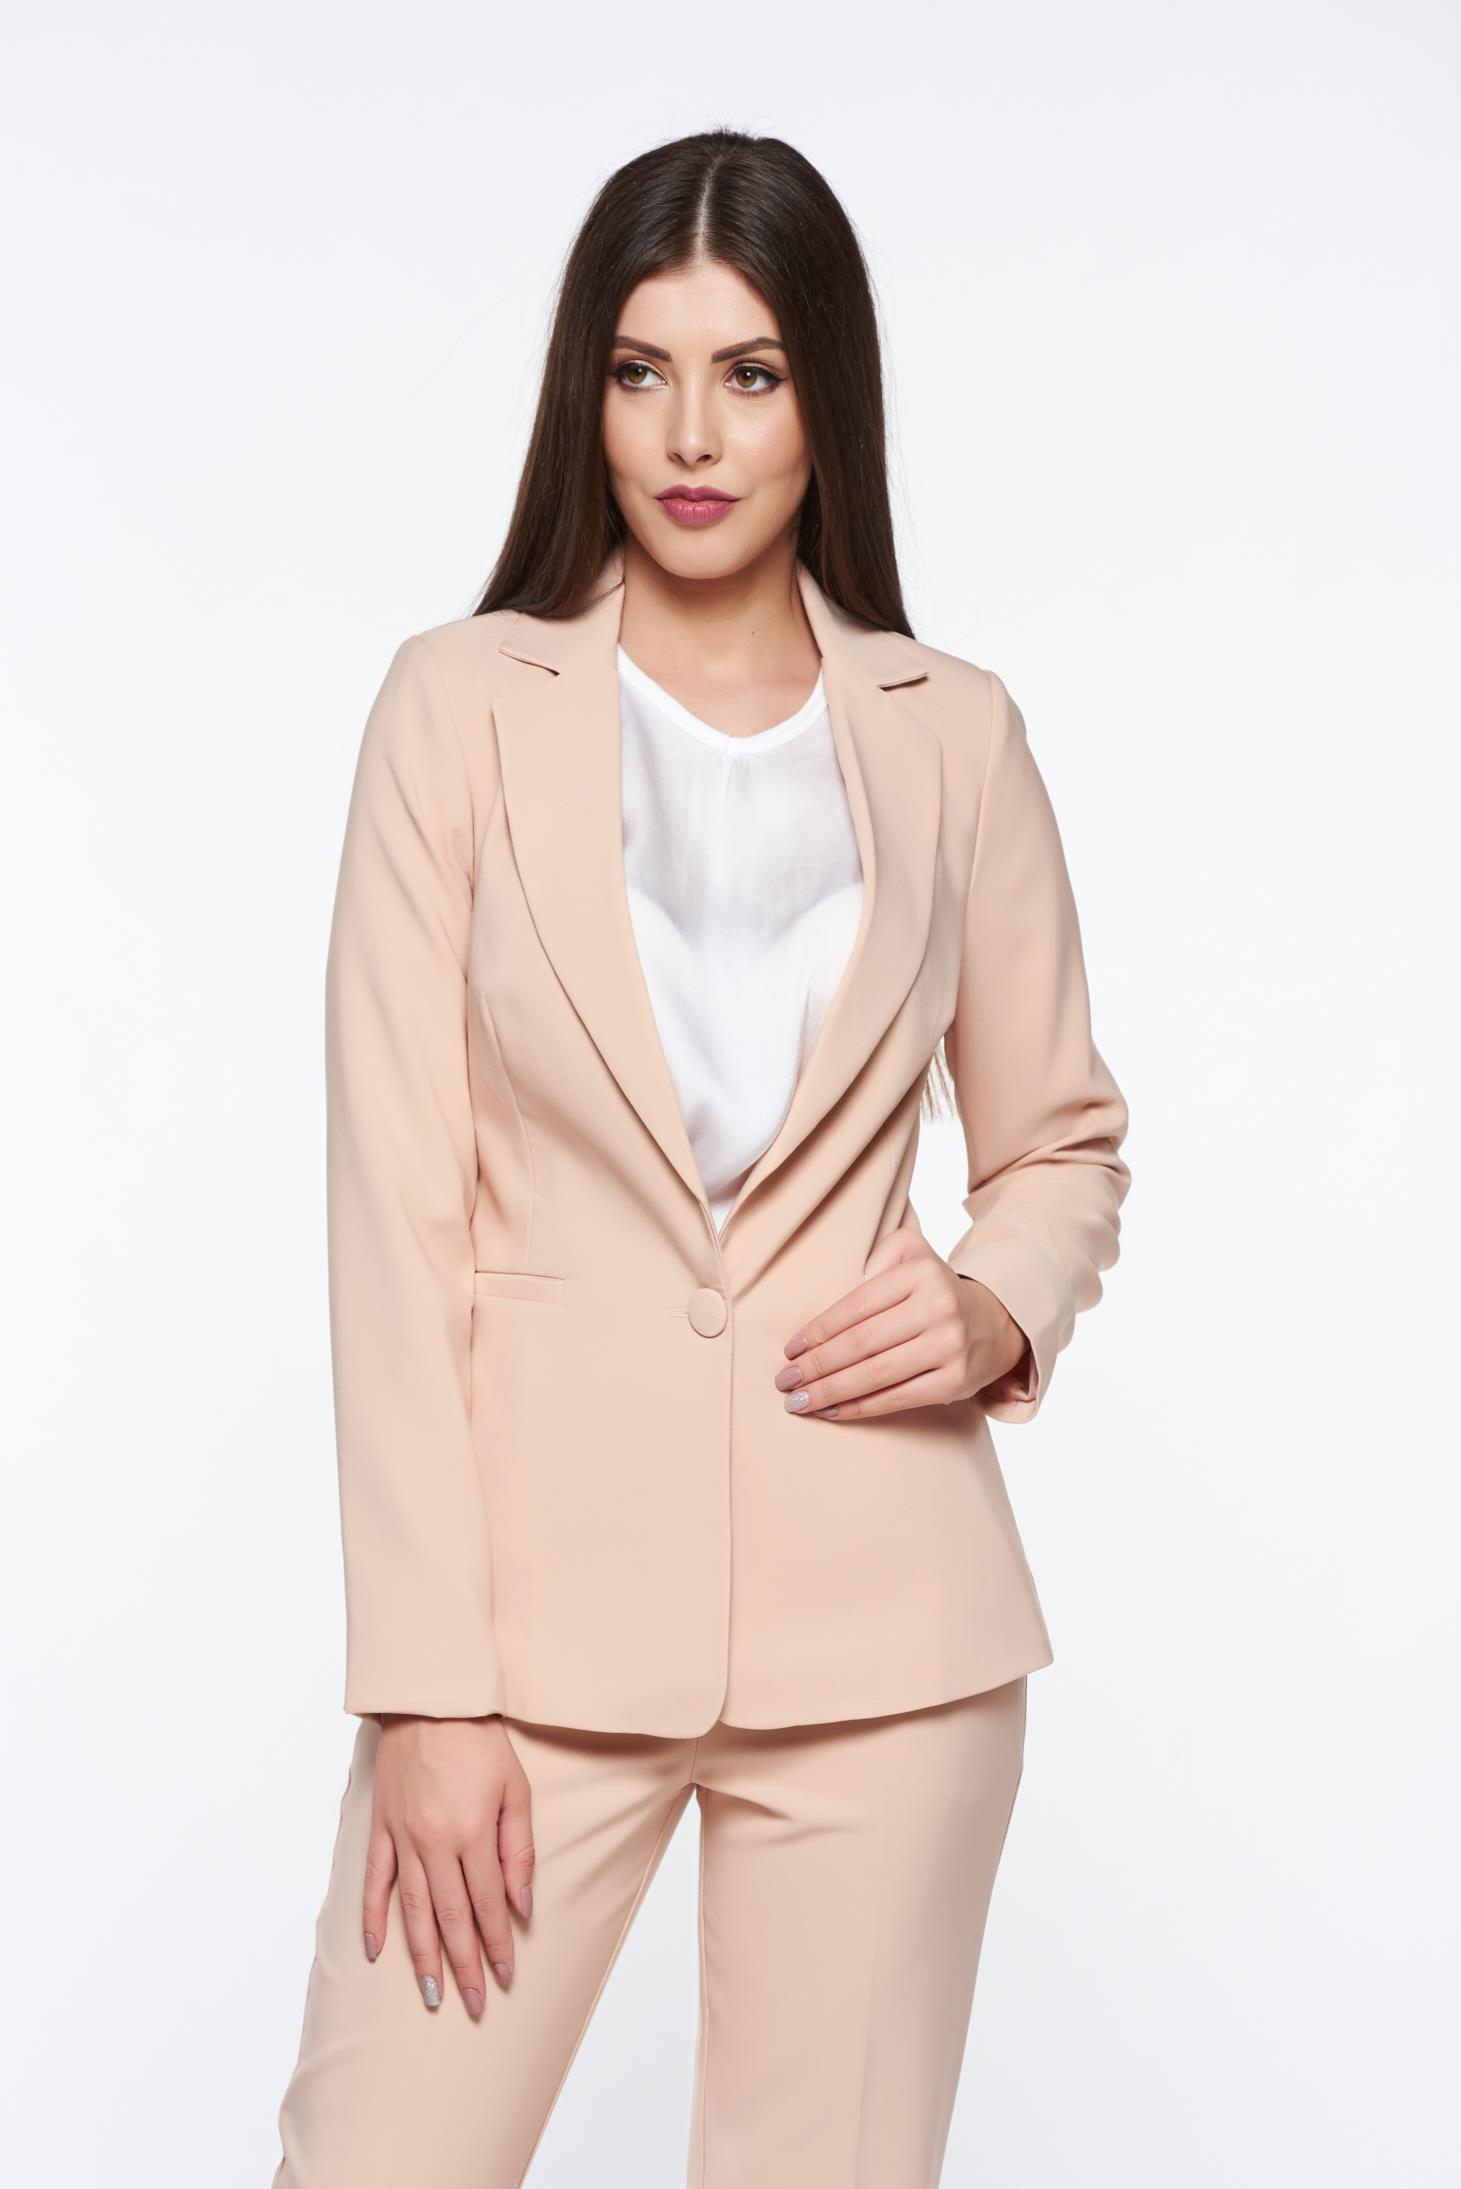 Artista rosa jacket with inside lining office accessorized pockets from non elastic fabric